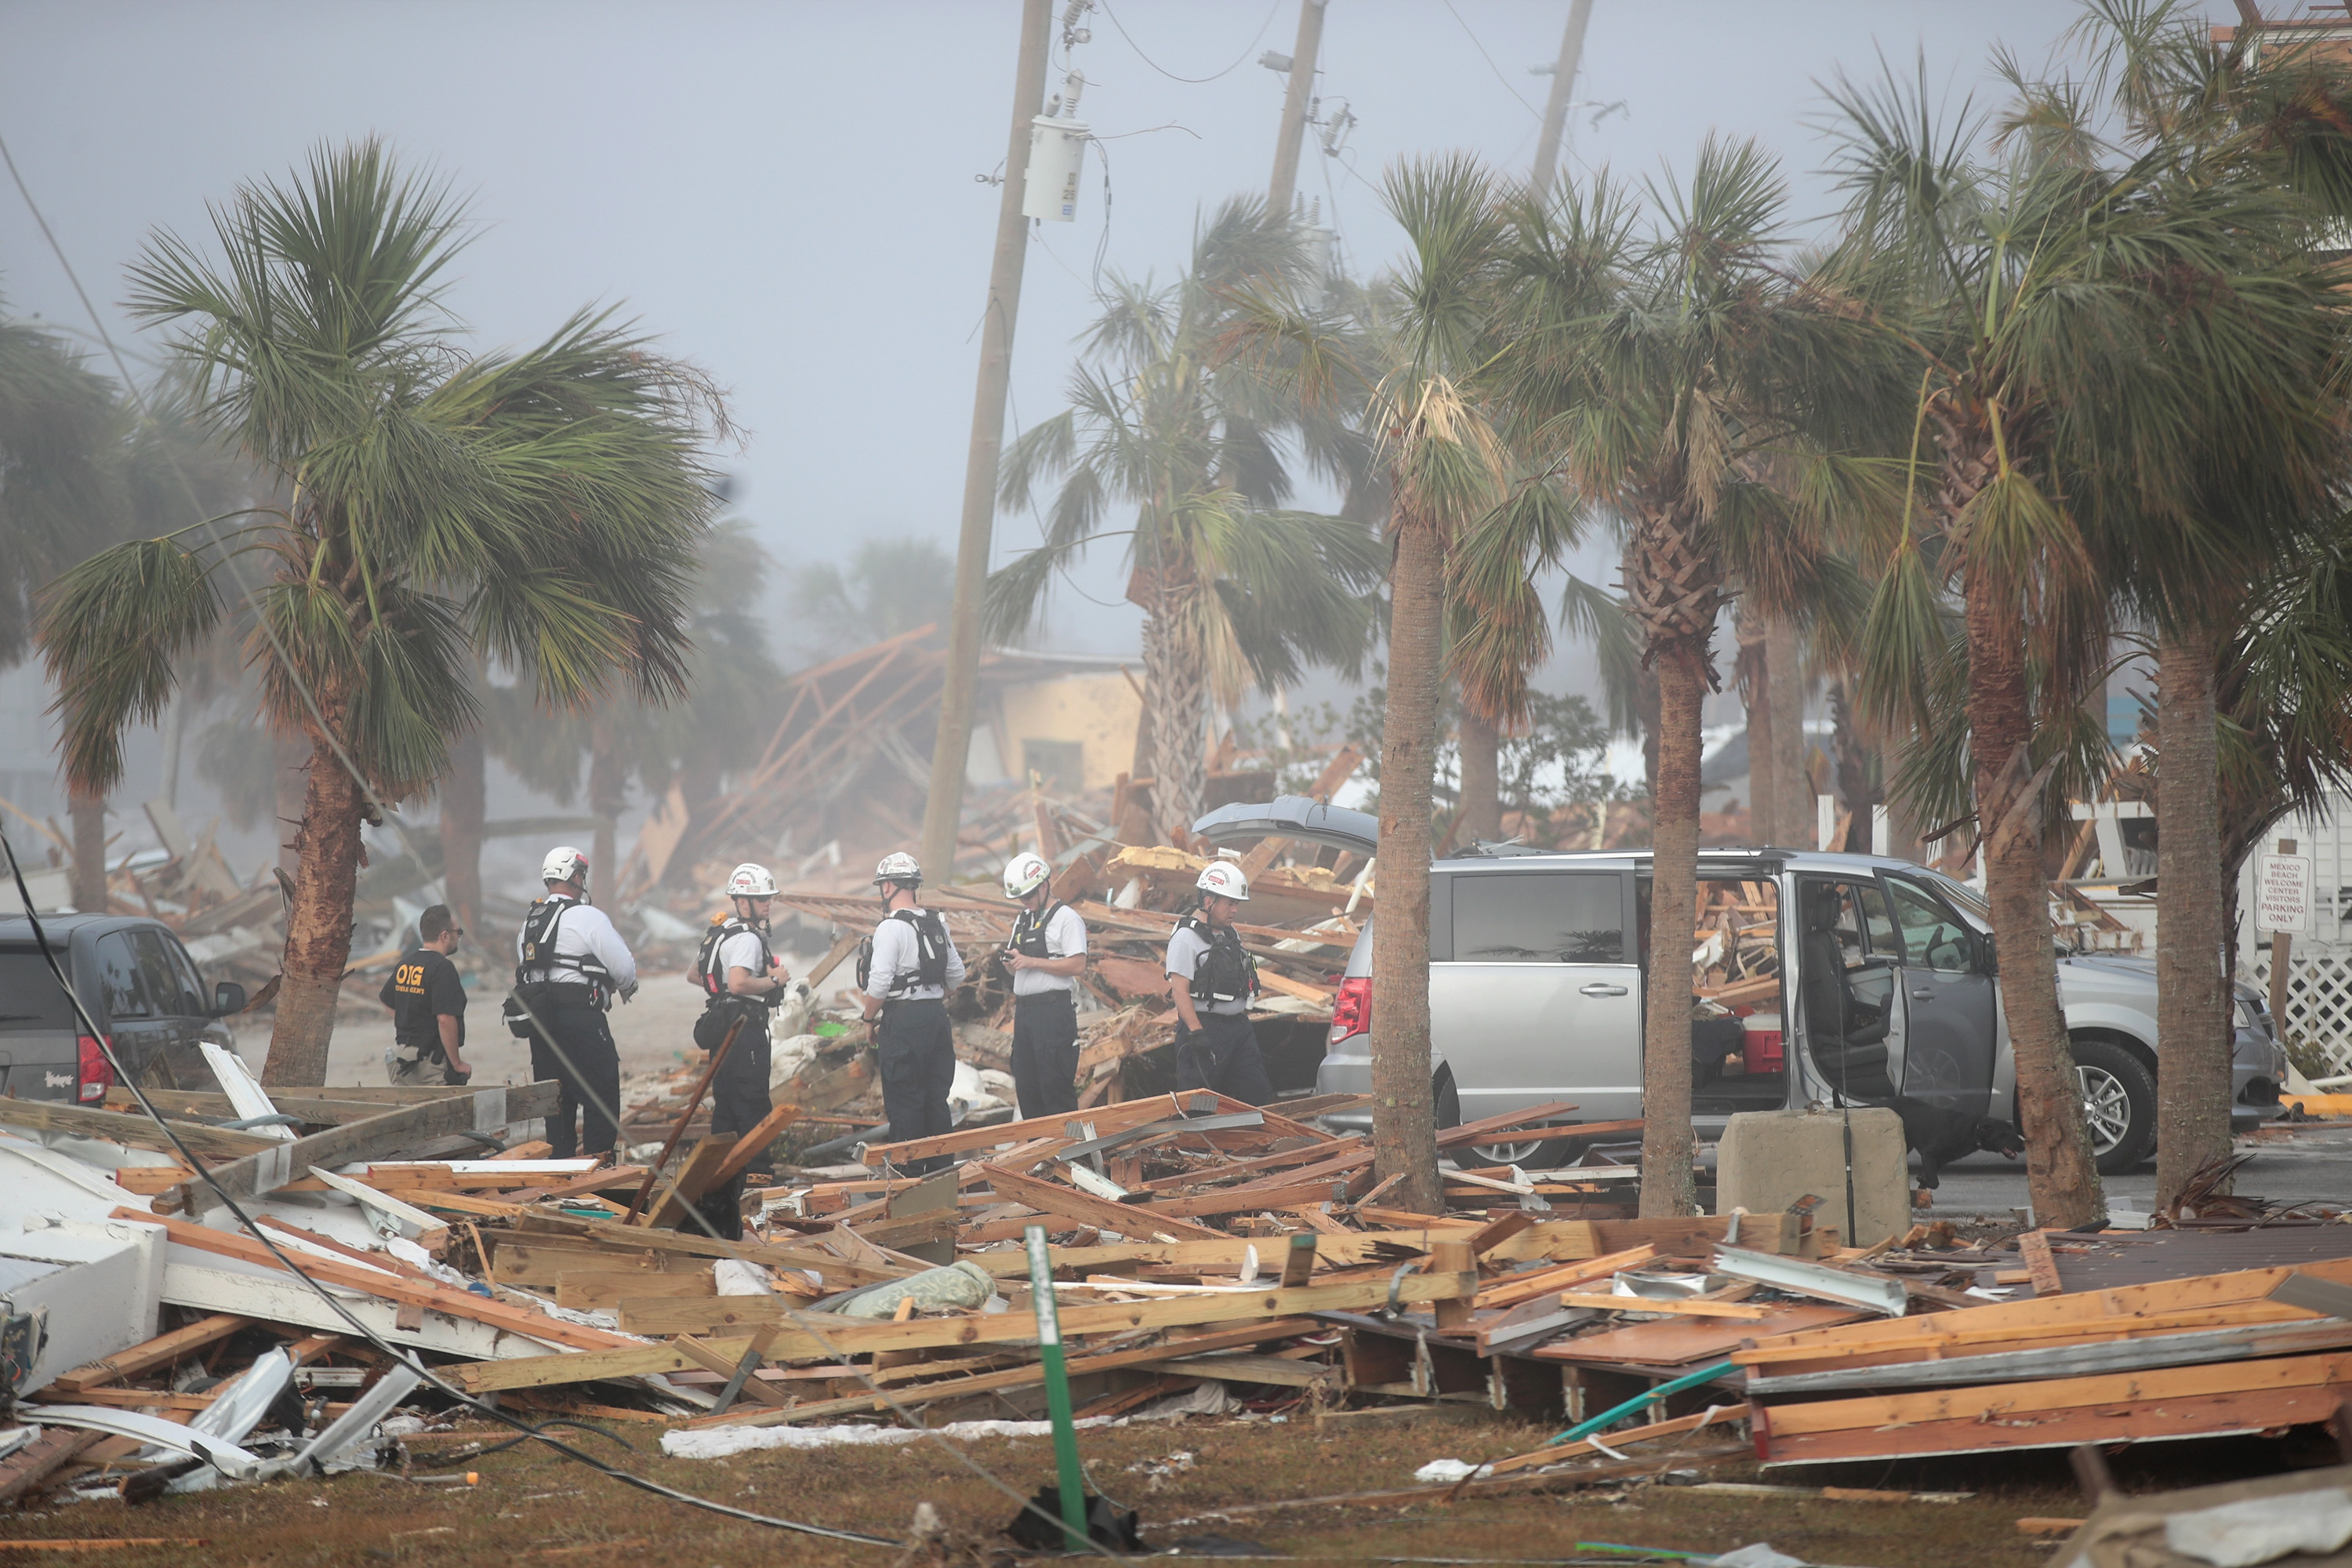 MEXICO BEACH, FL - OCTOBER 16: Members of the Maryland Task Force urban search and rescue team continue to search for victims of Hurricane Michael on October 16, 2018 in Mexico Beach, Florida. Hurricane Michael slammed into the Florida Panhandle on October 10, as a category 4 storm, claiming at least 19 lives and causing massive damage. (Scott Olson/Getty Images)